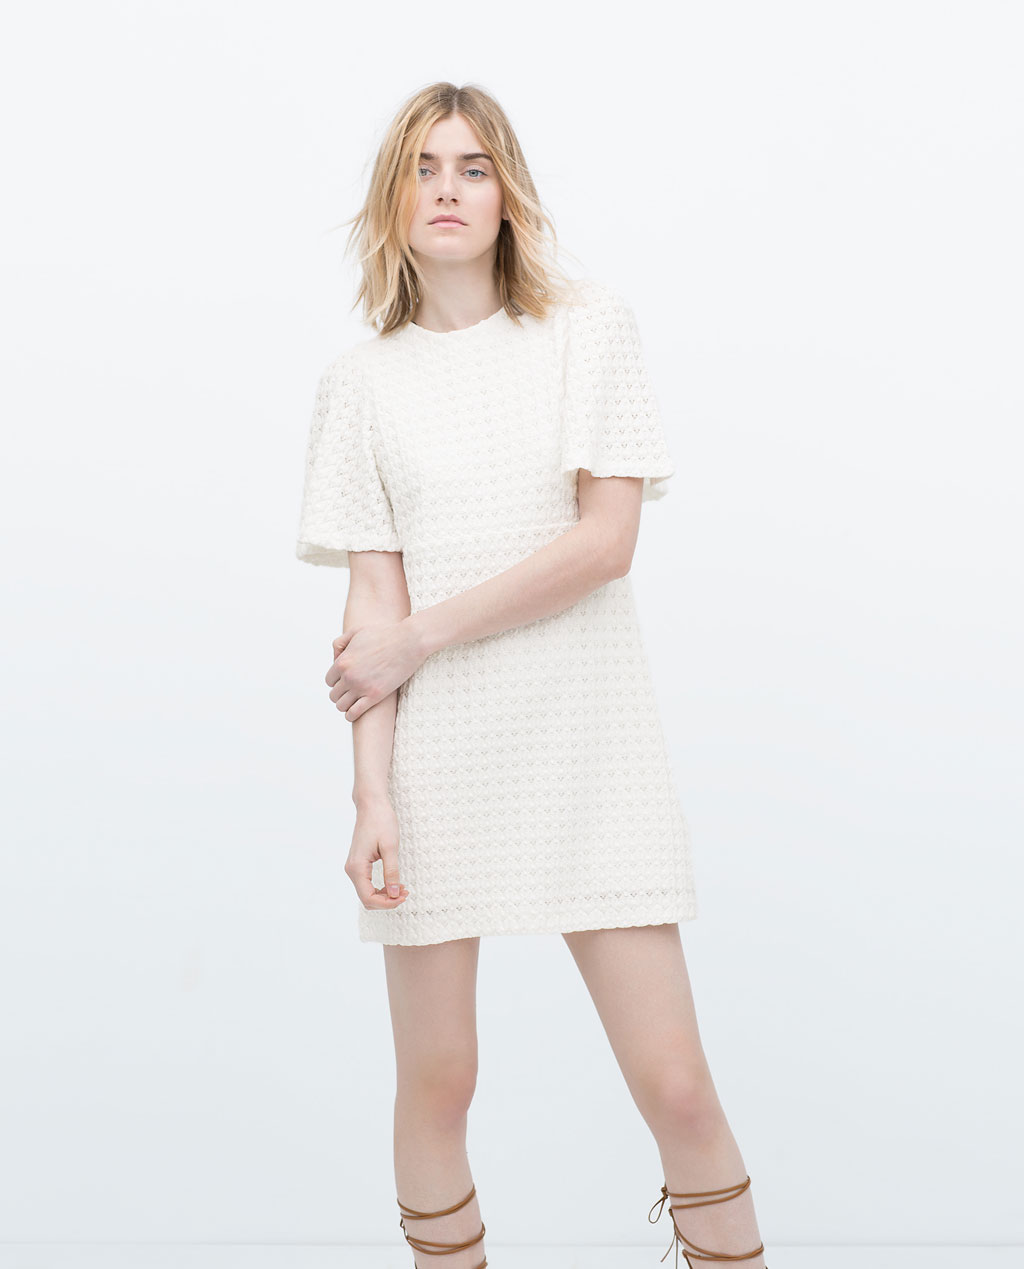 zara-white-summer-dress